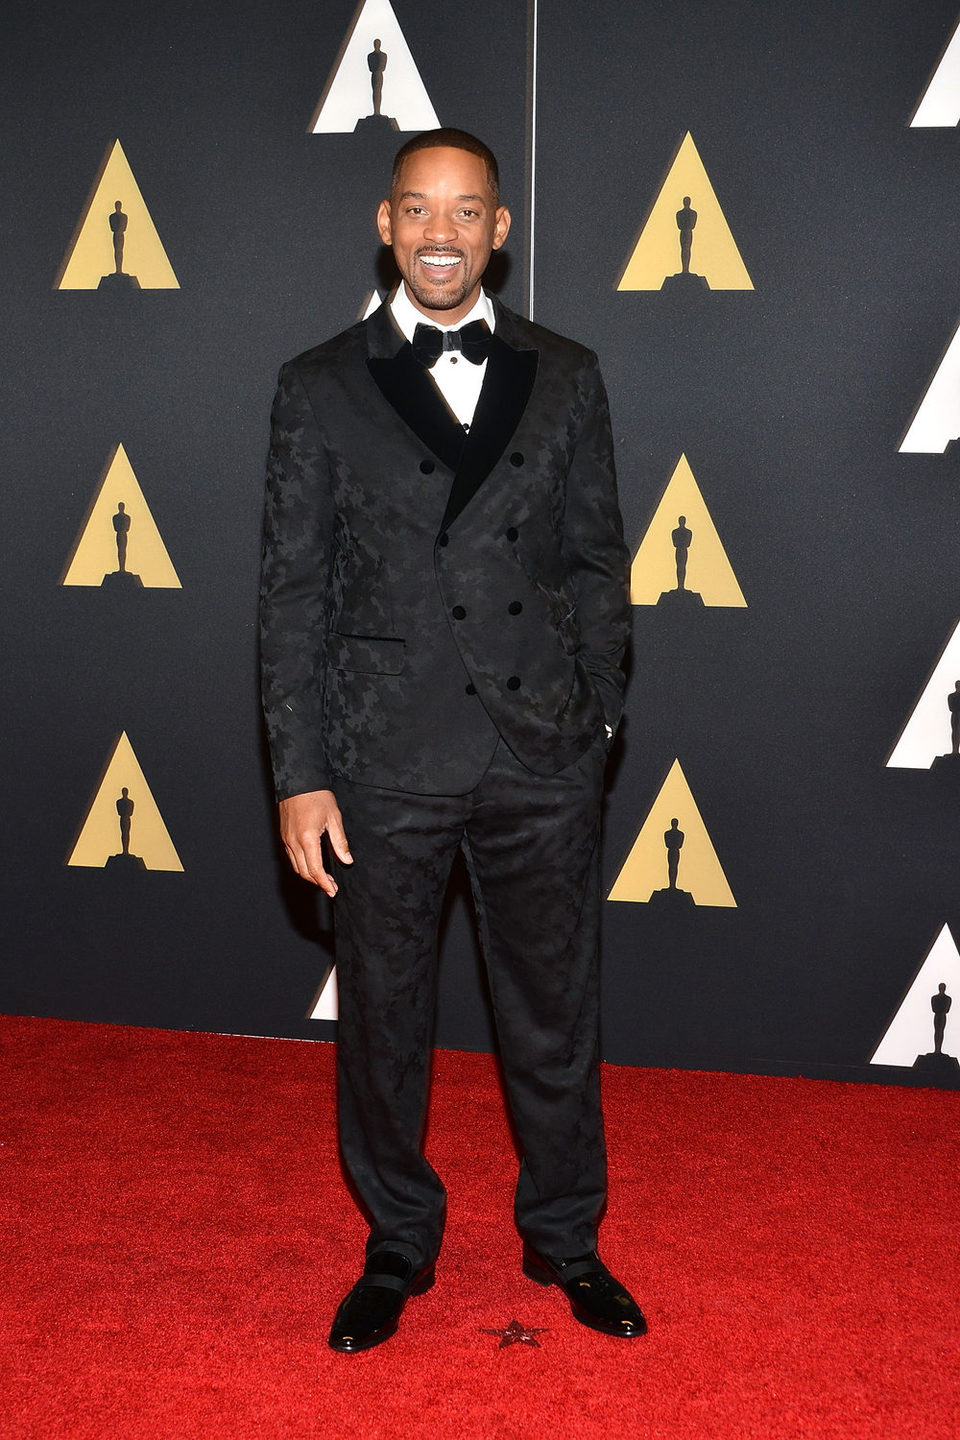 Will Smith in Governor's Awards 2015